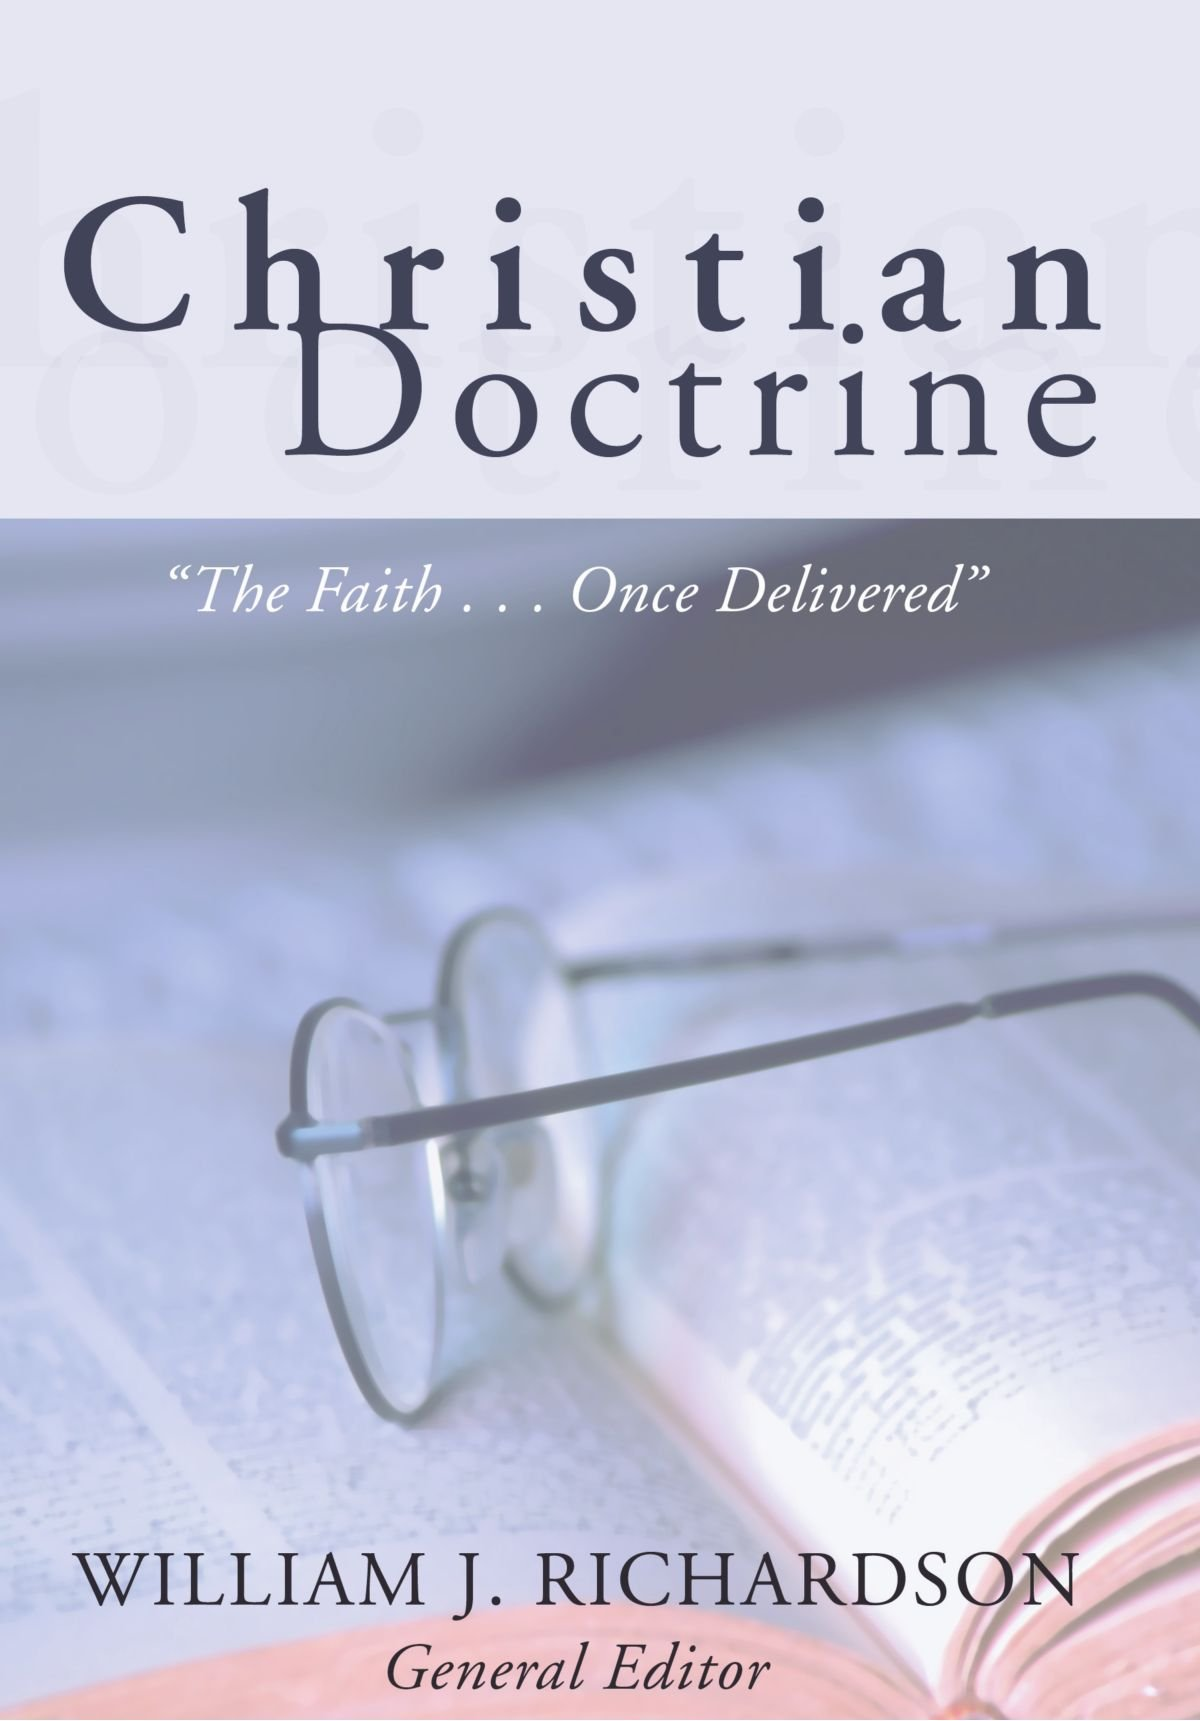 Christian Doctrine: The Faith Once Delivered